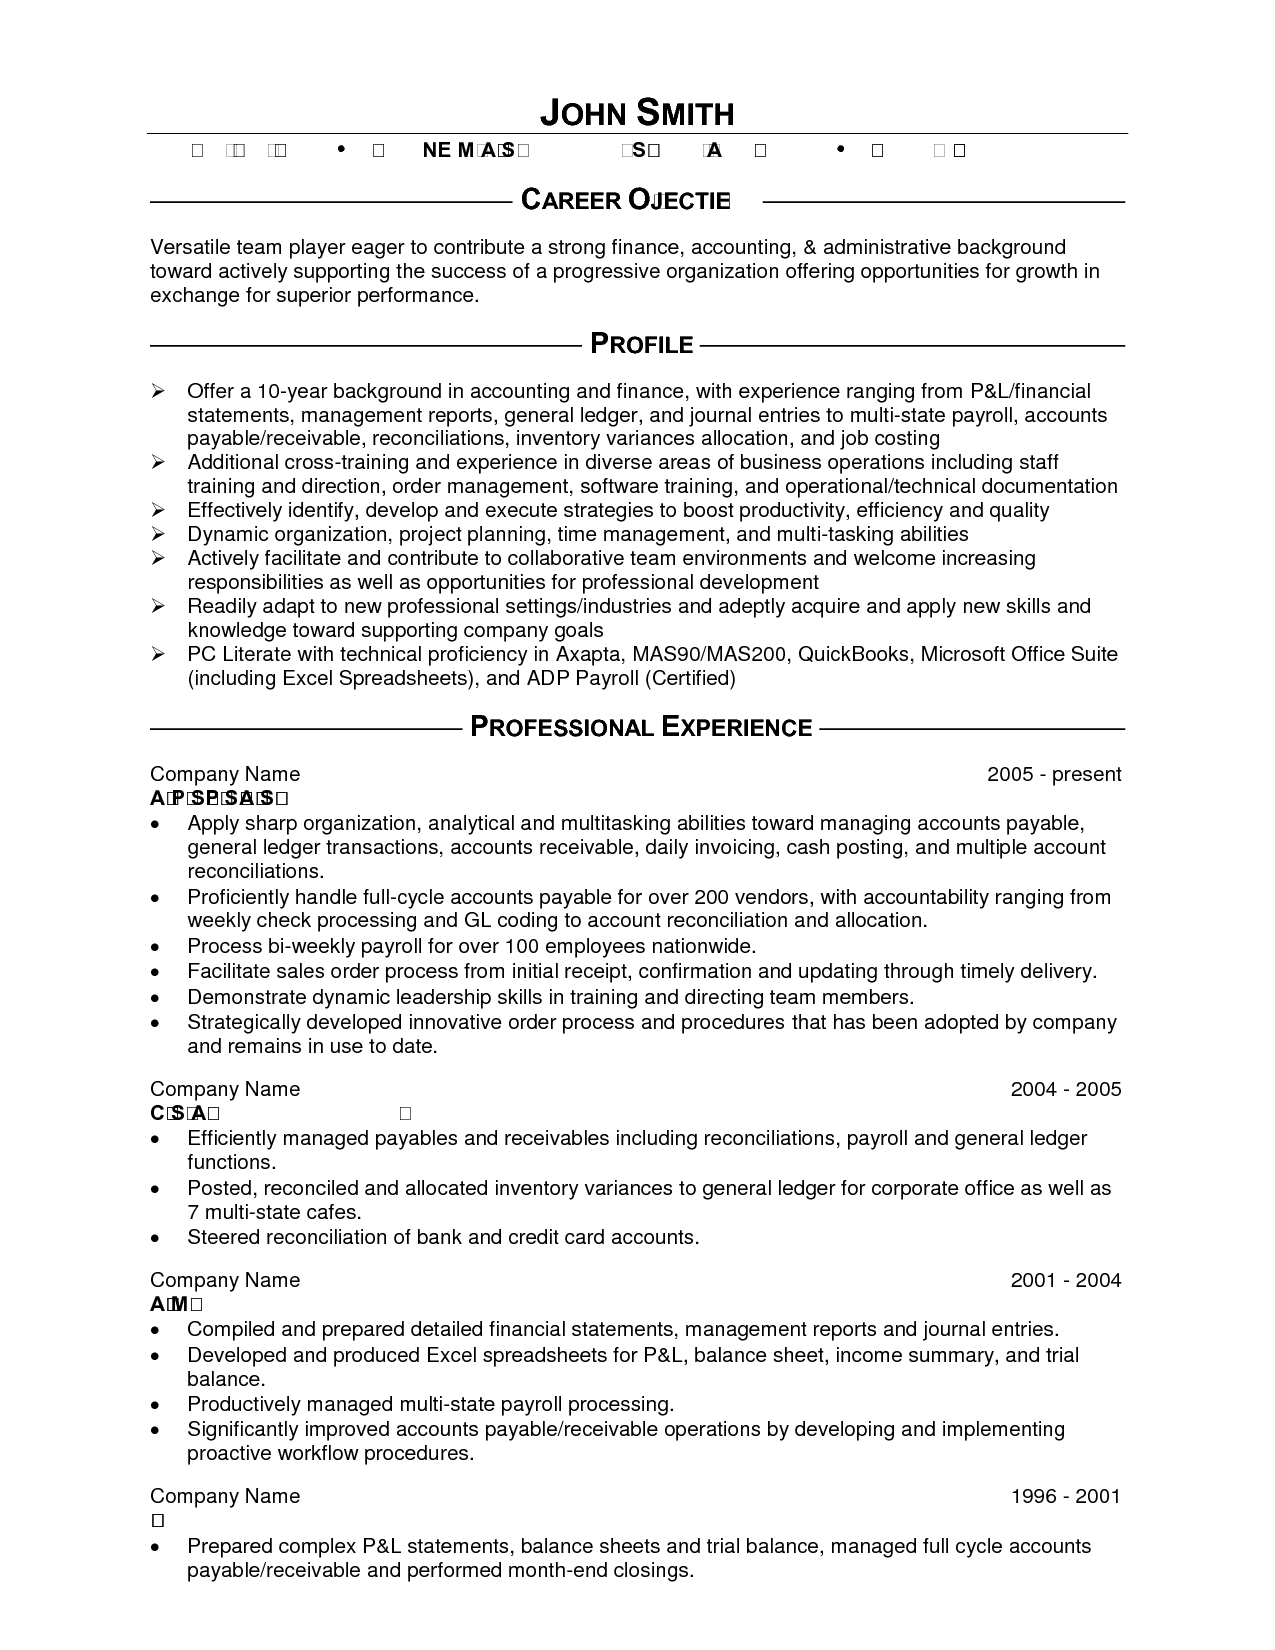 Explore Job Resume Examples, Resume Tips, And More!  Accounting Job Resume